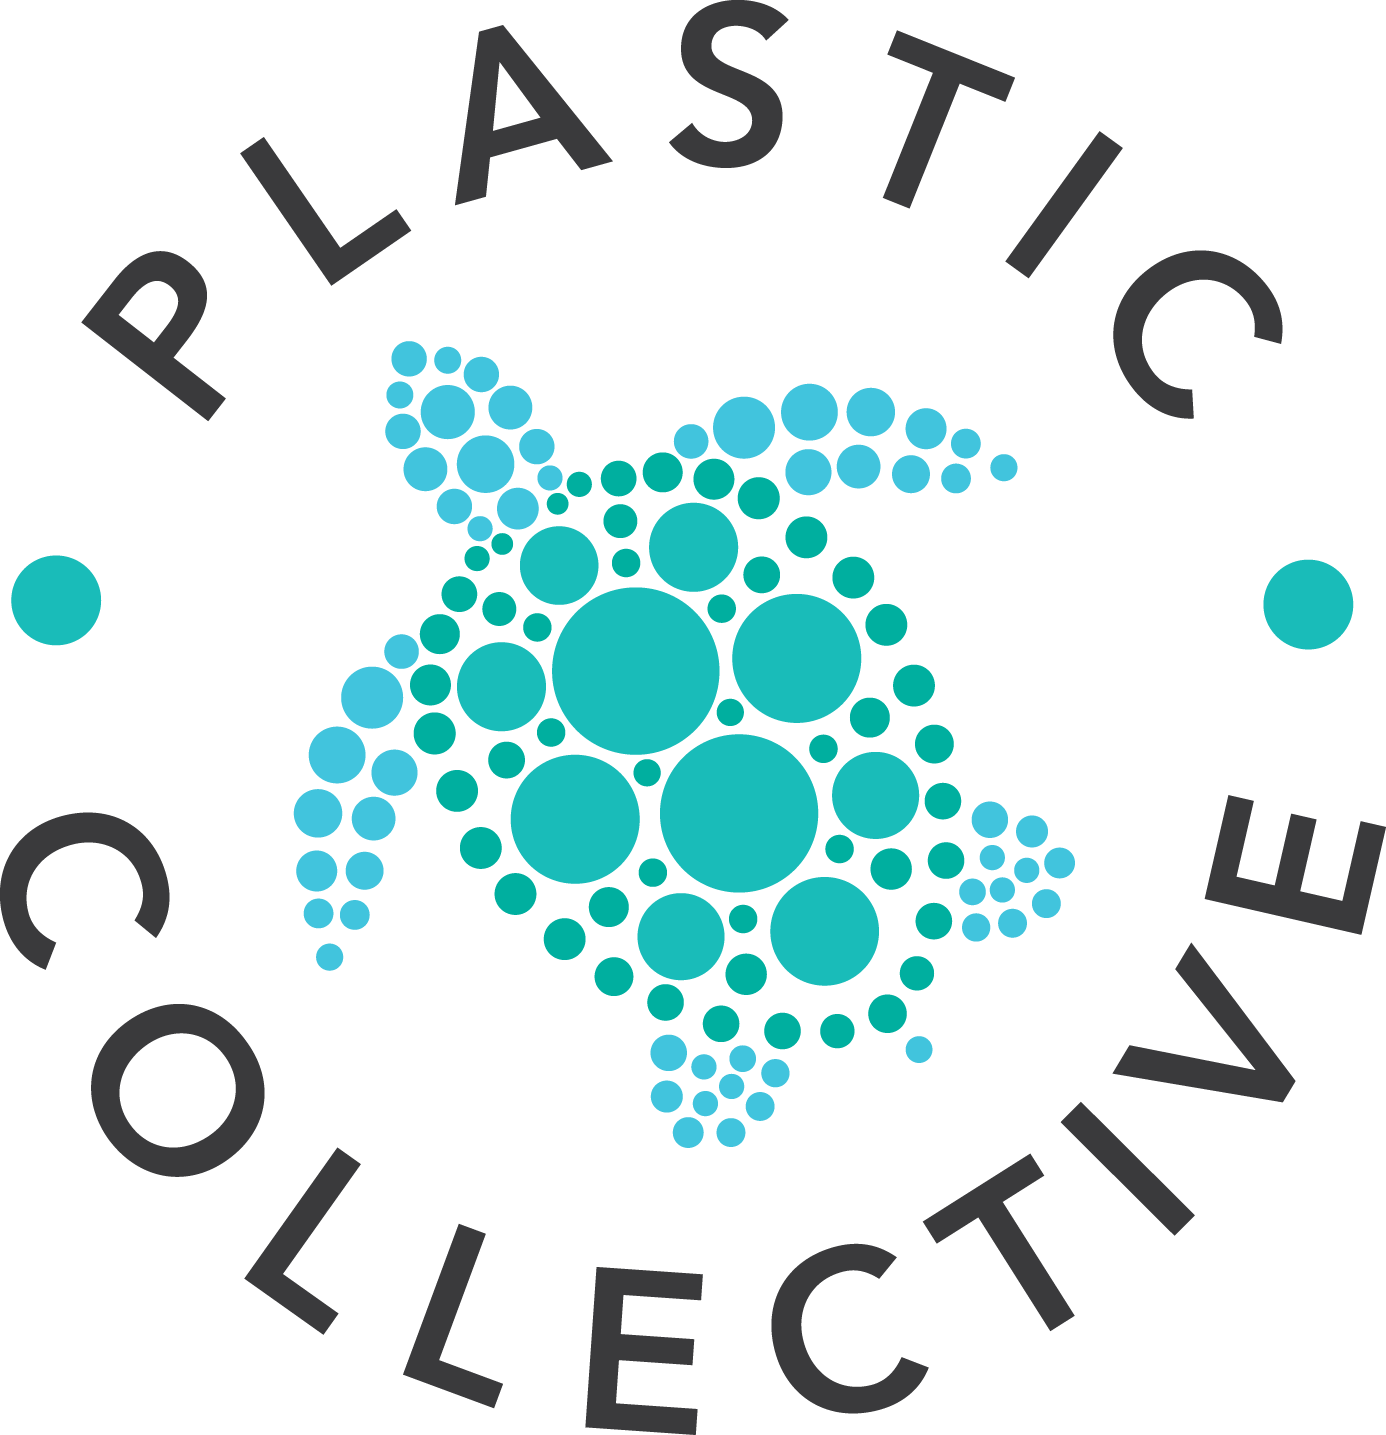 Plastic Collective